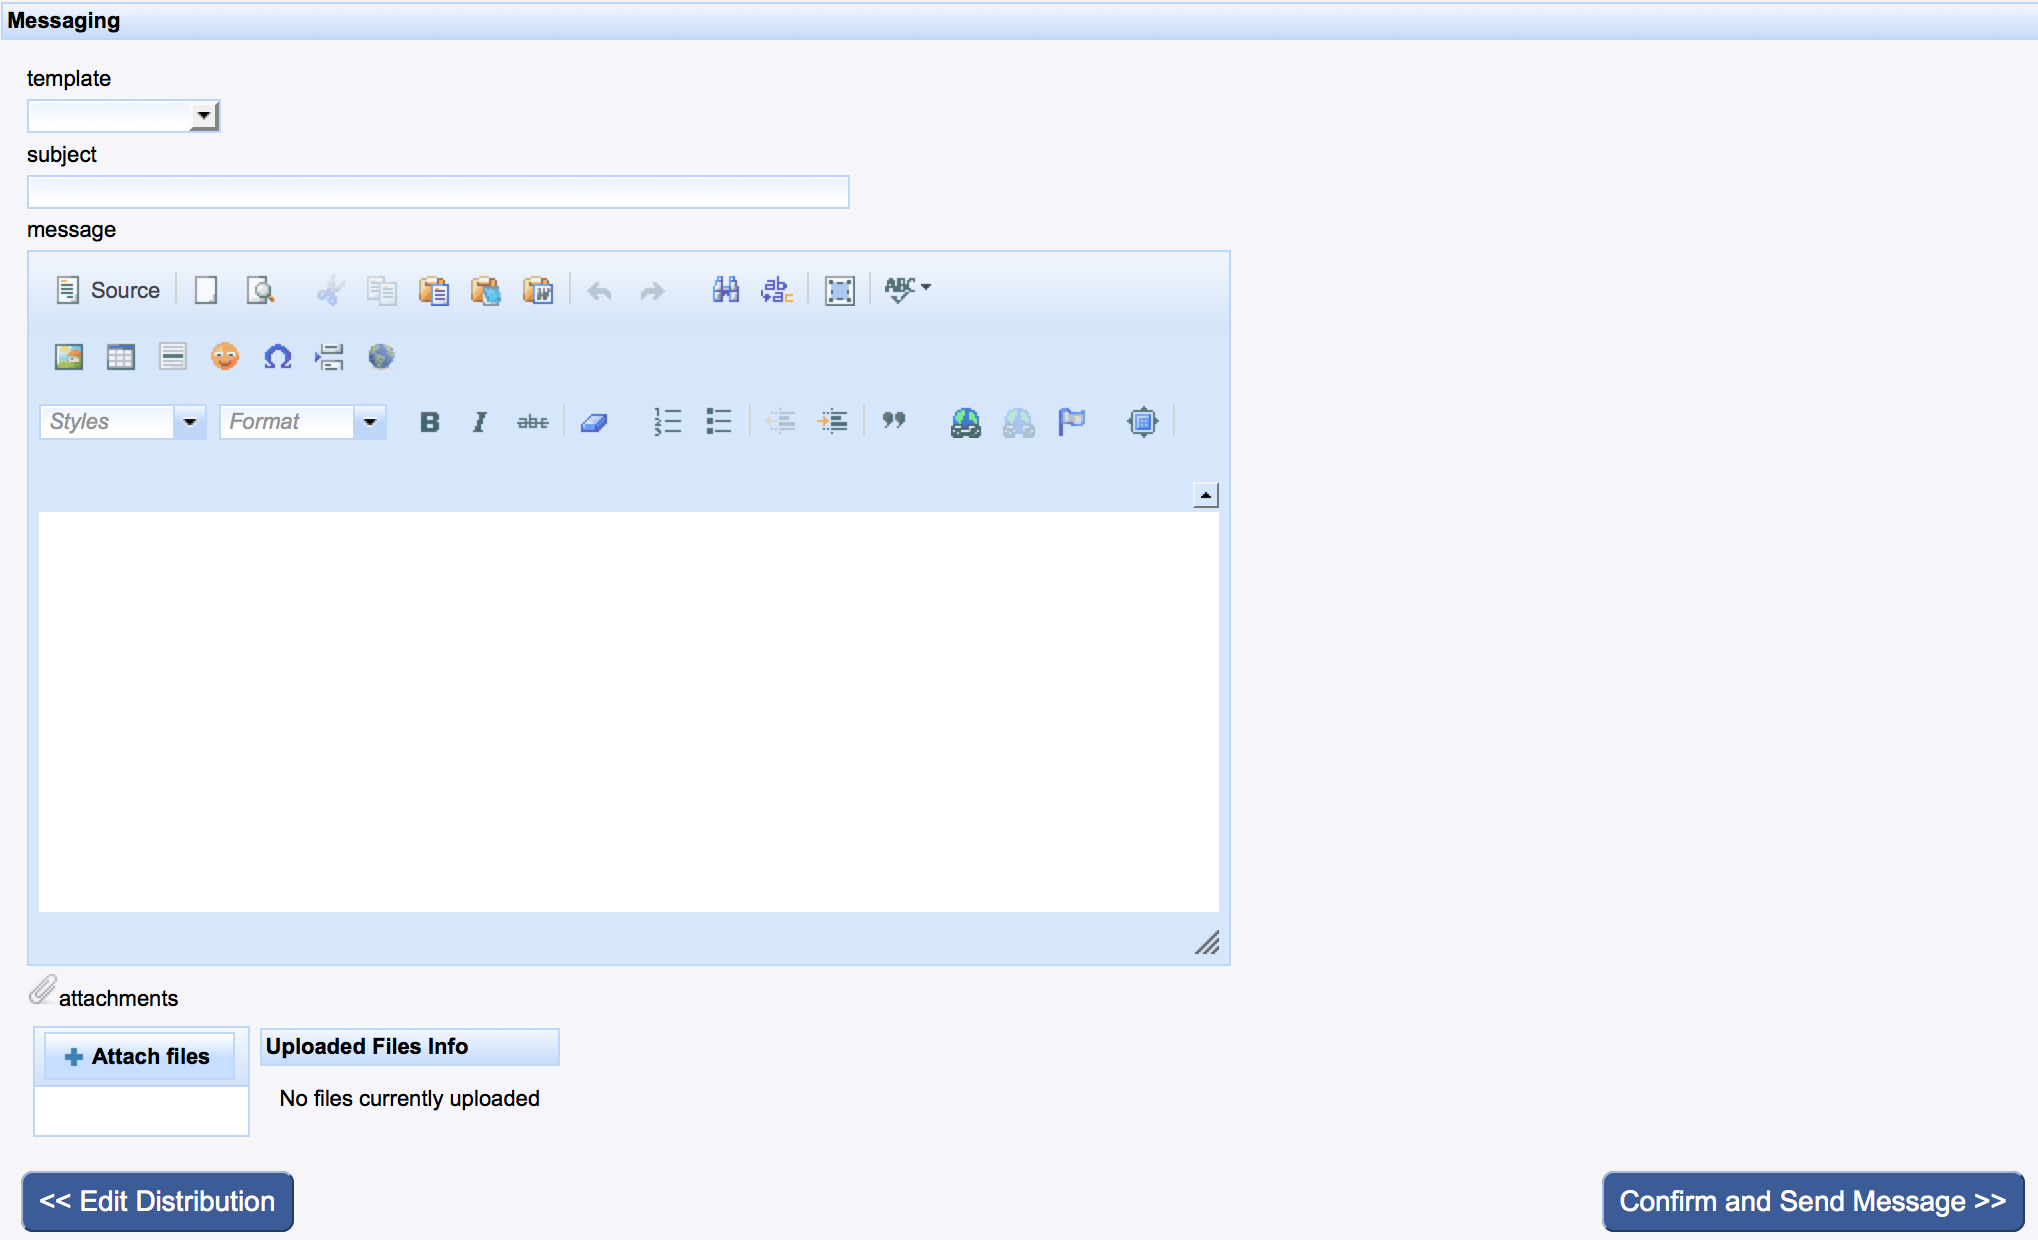 MuseMinder email messaging